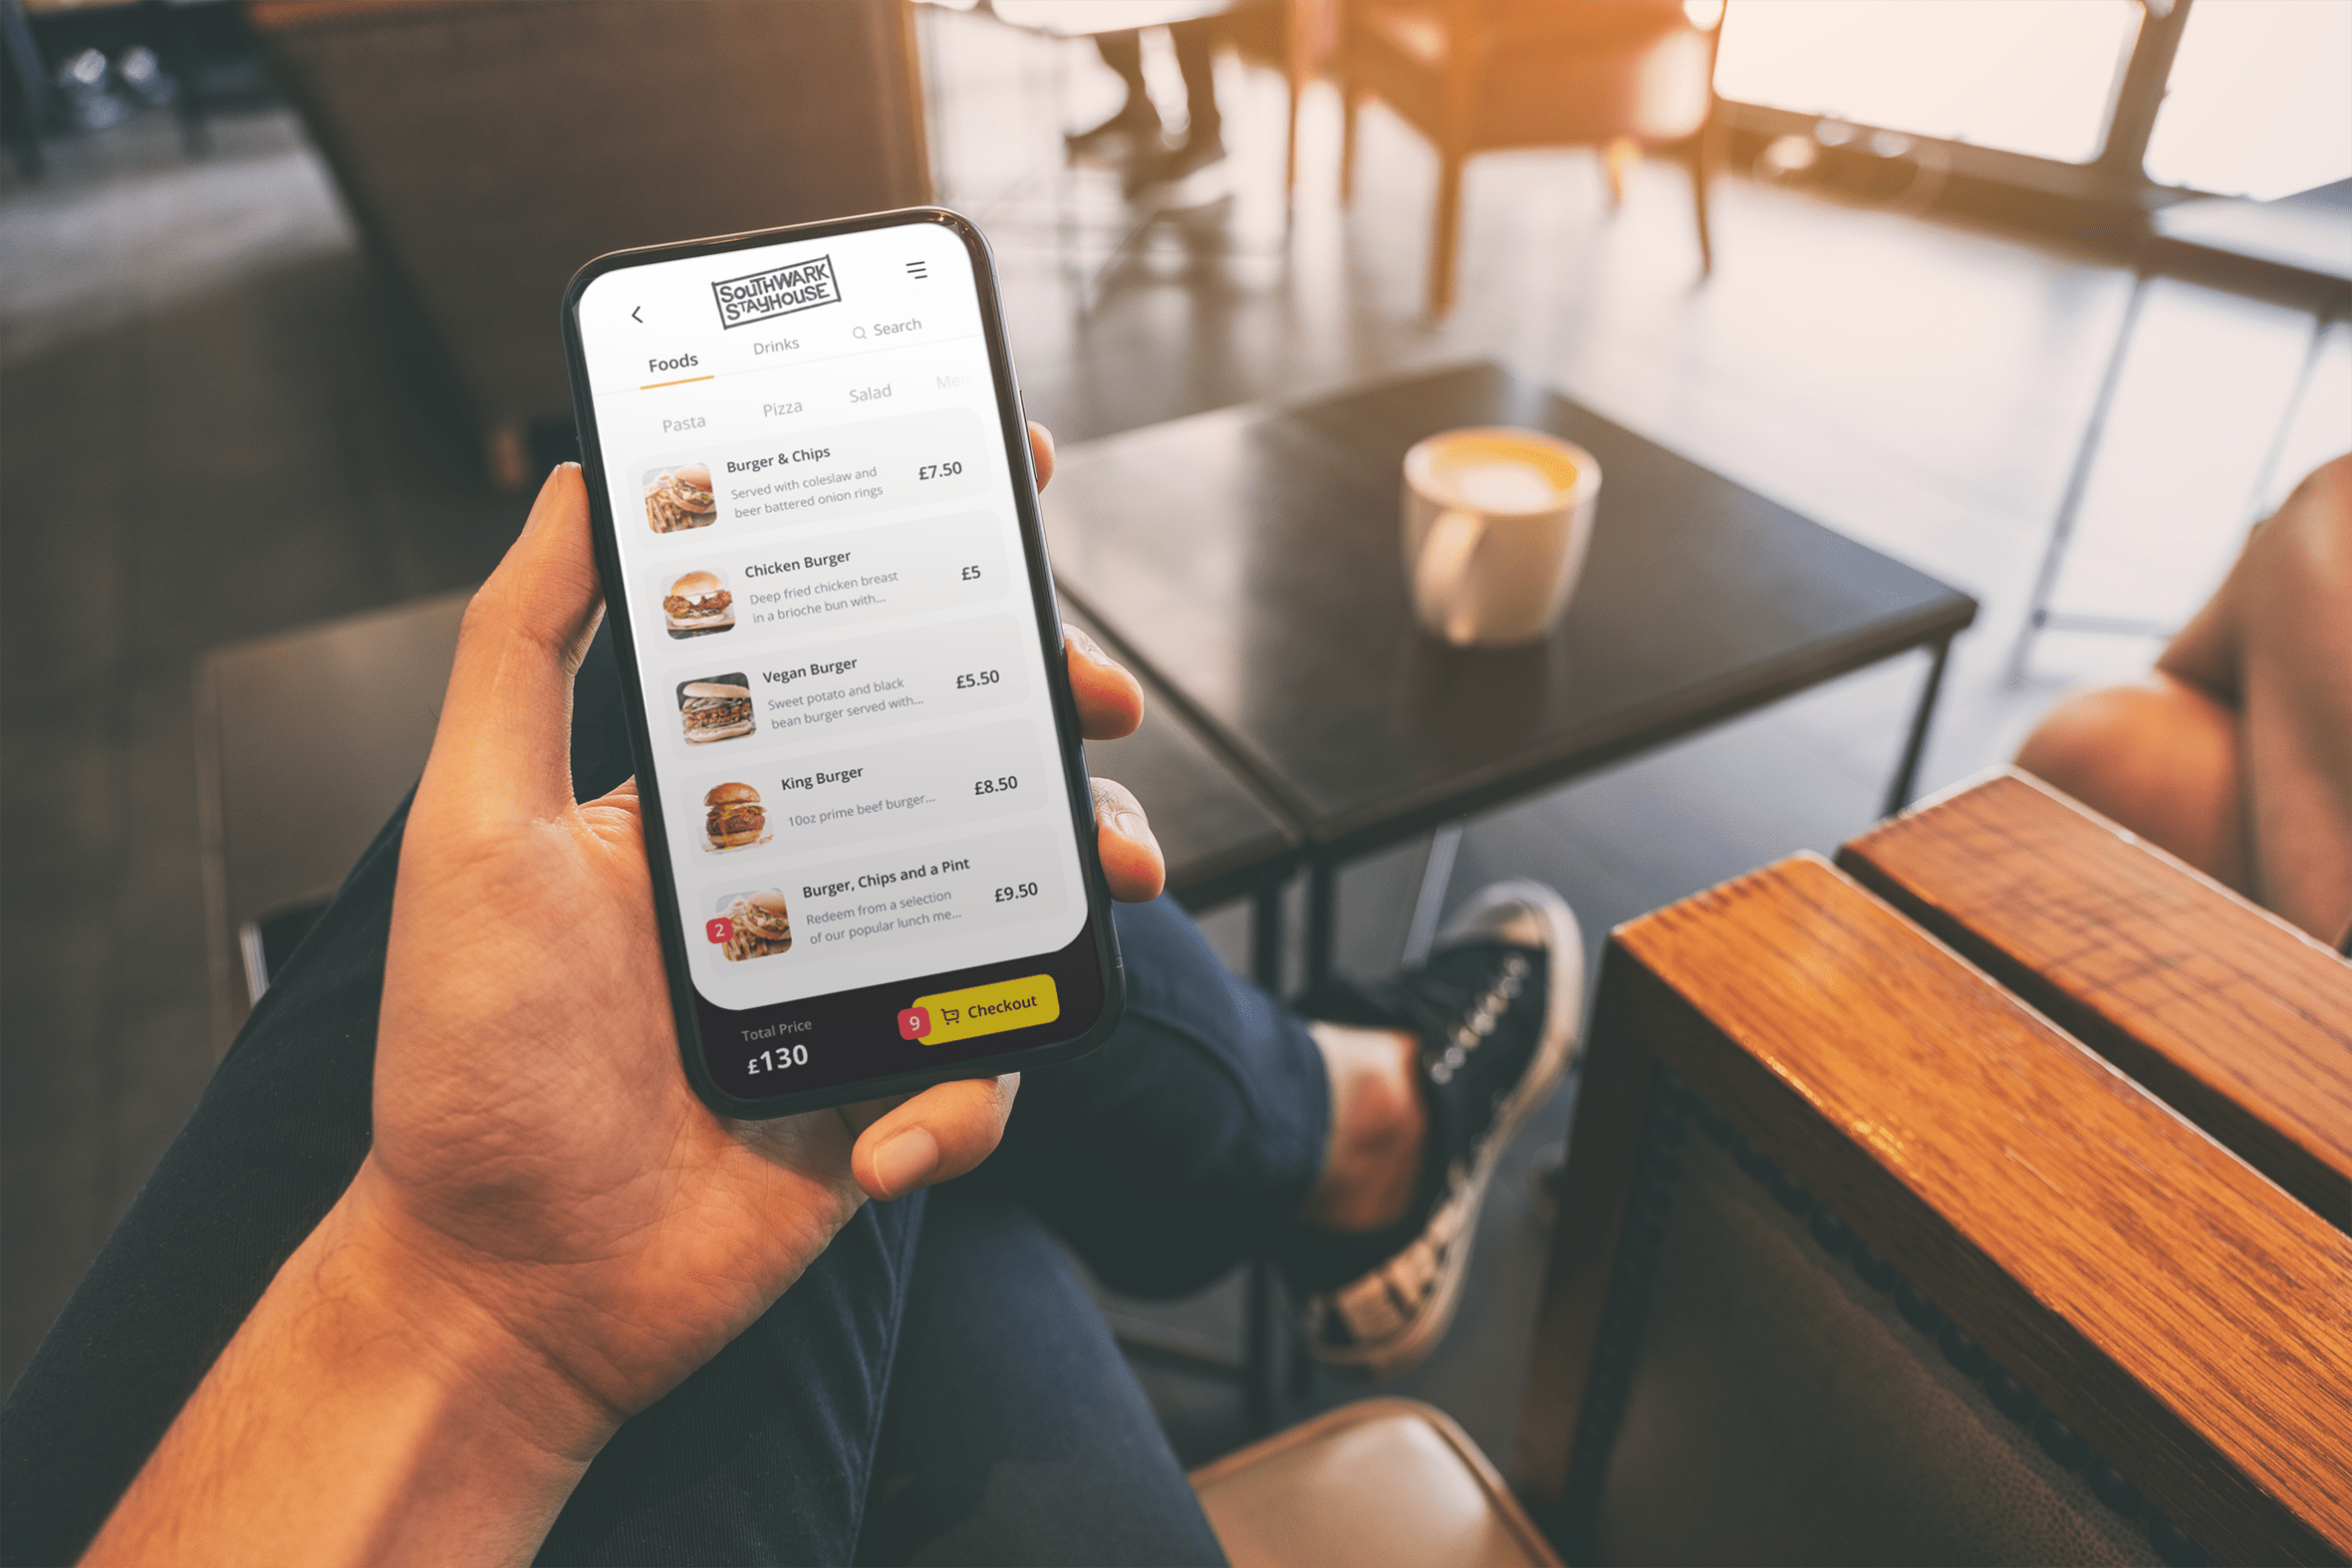 Yoello Order & Pay partners with international digital payments company Square